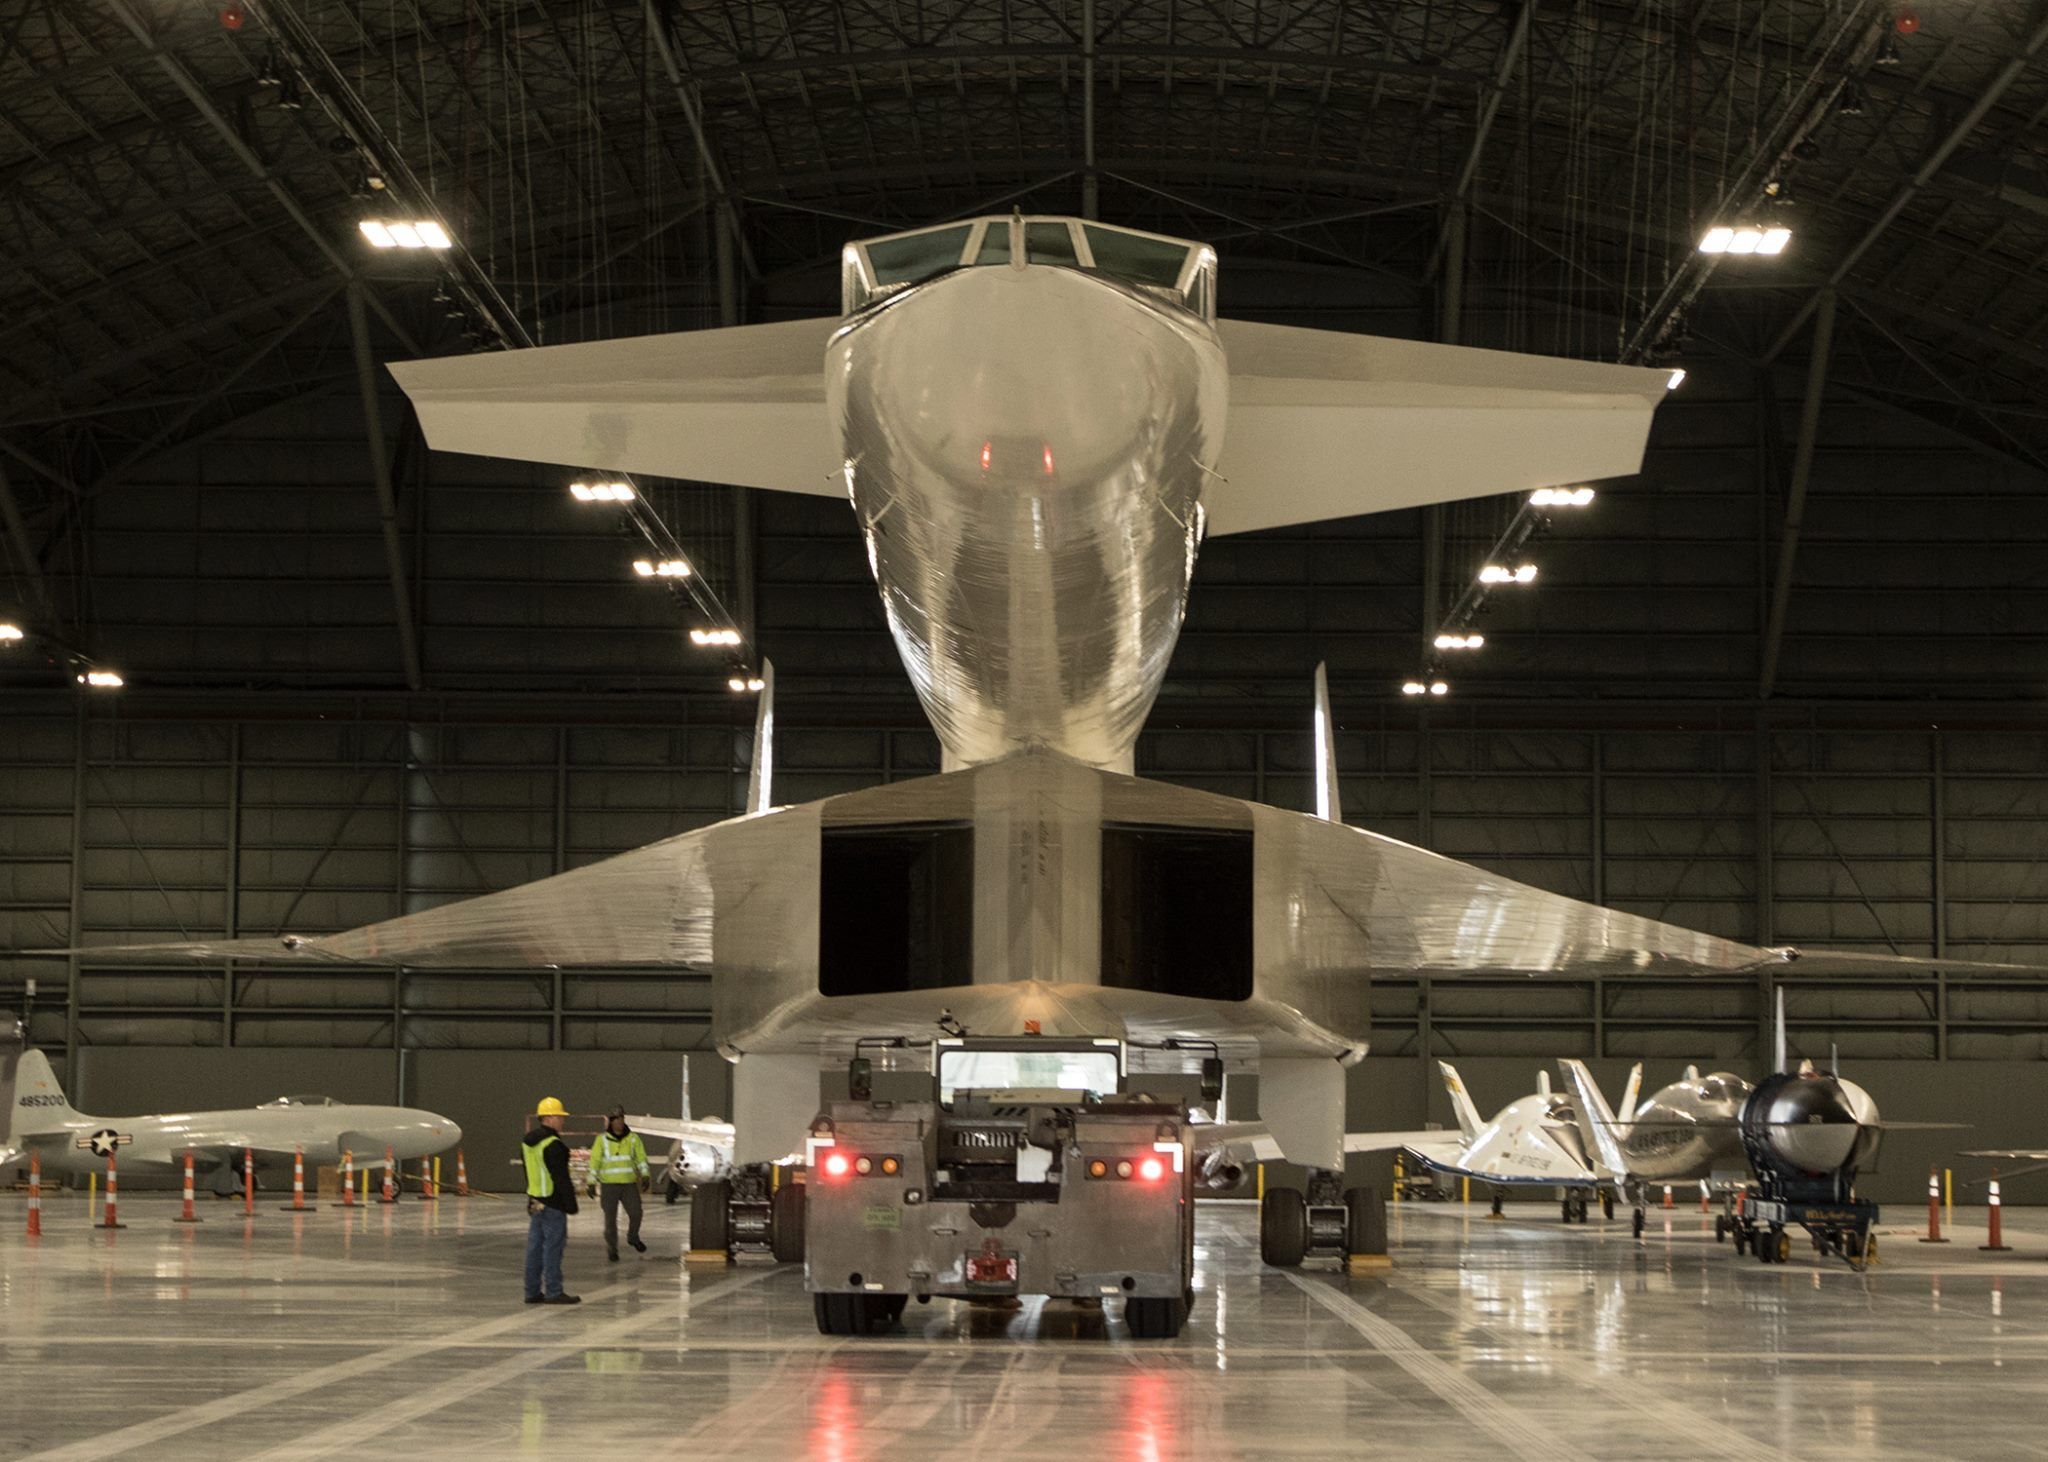 XB-70 Valkyrie at the National Museum of the Air Force